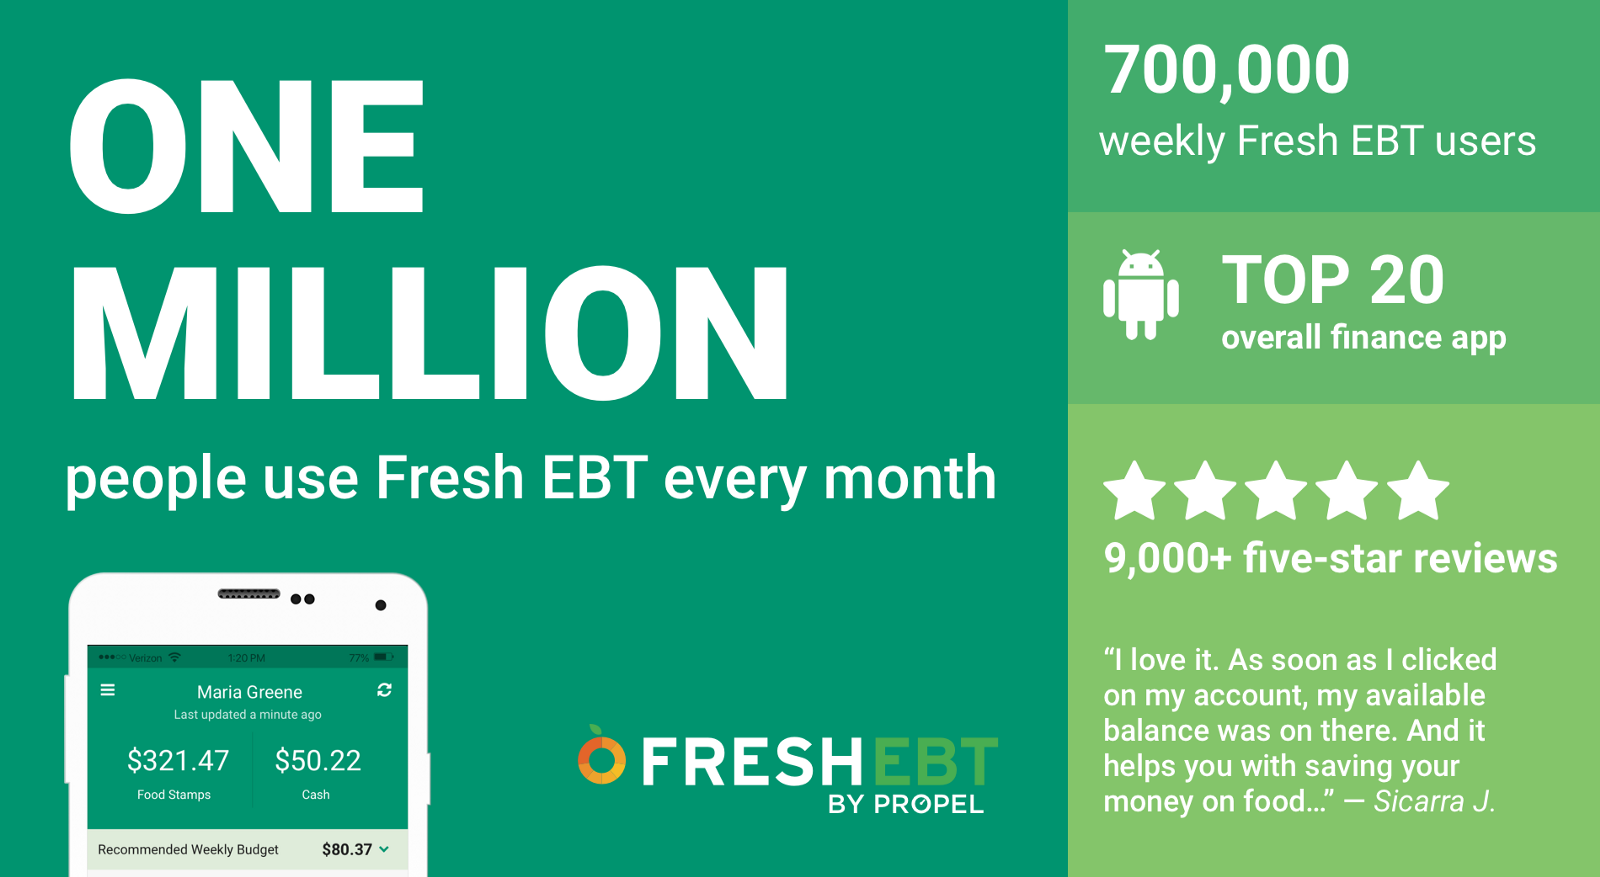 Featured image of One million people use Fresh EBT